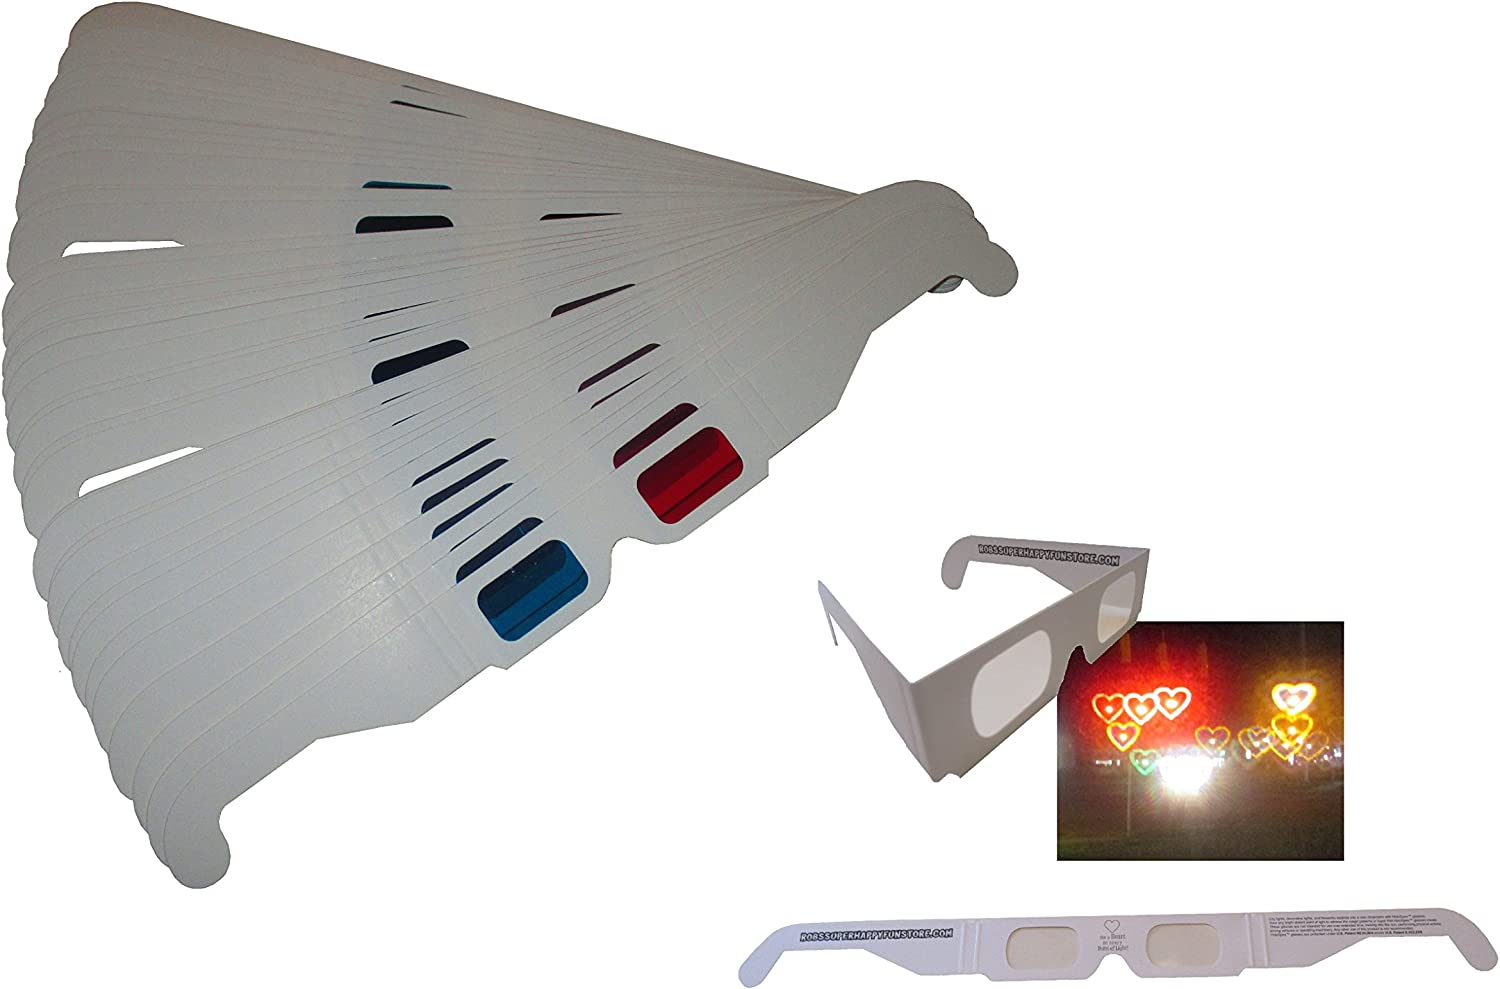 Red and Cyan cardboard-50 Pairs Unfolded White or Yellow Frame 3D Glasses Direct-3D Glasses Buy 3D Glasses in Bulk and Save